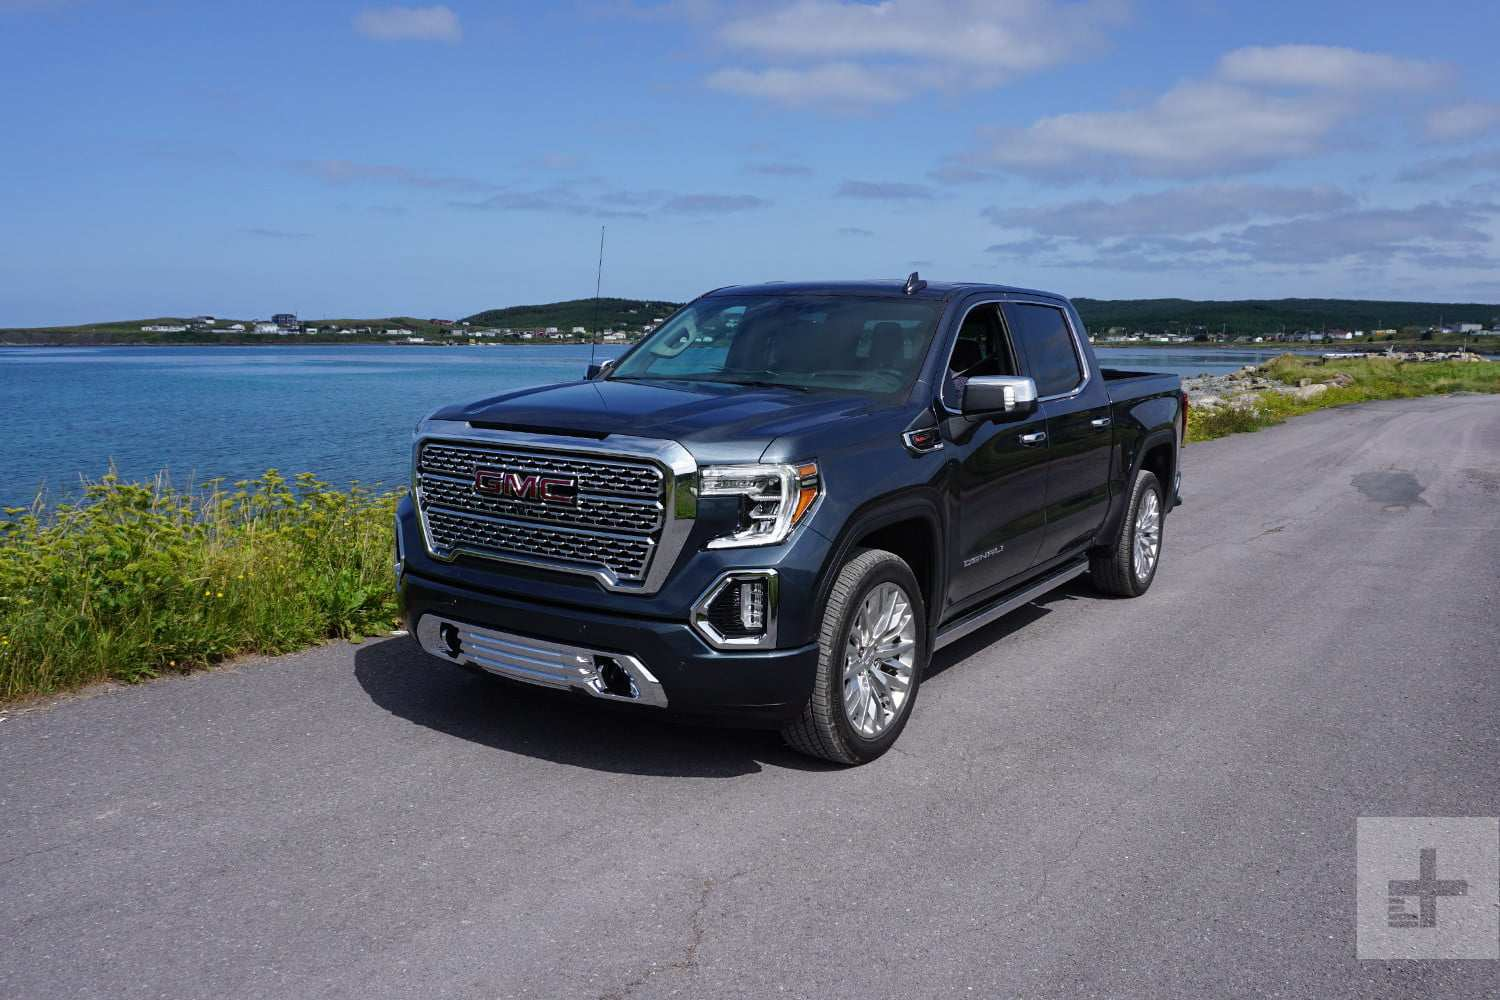 53 All New Best Gmc Denali 2019 Interior Exterior And Review Model with Best Gmc Denali 2019 Interior Exterior And Review